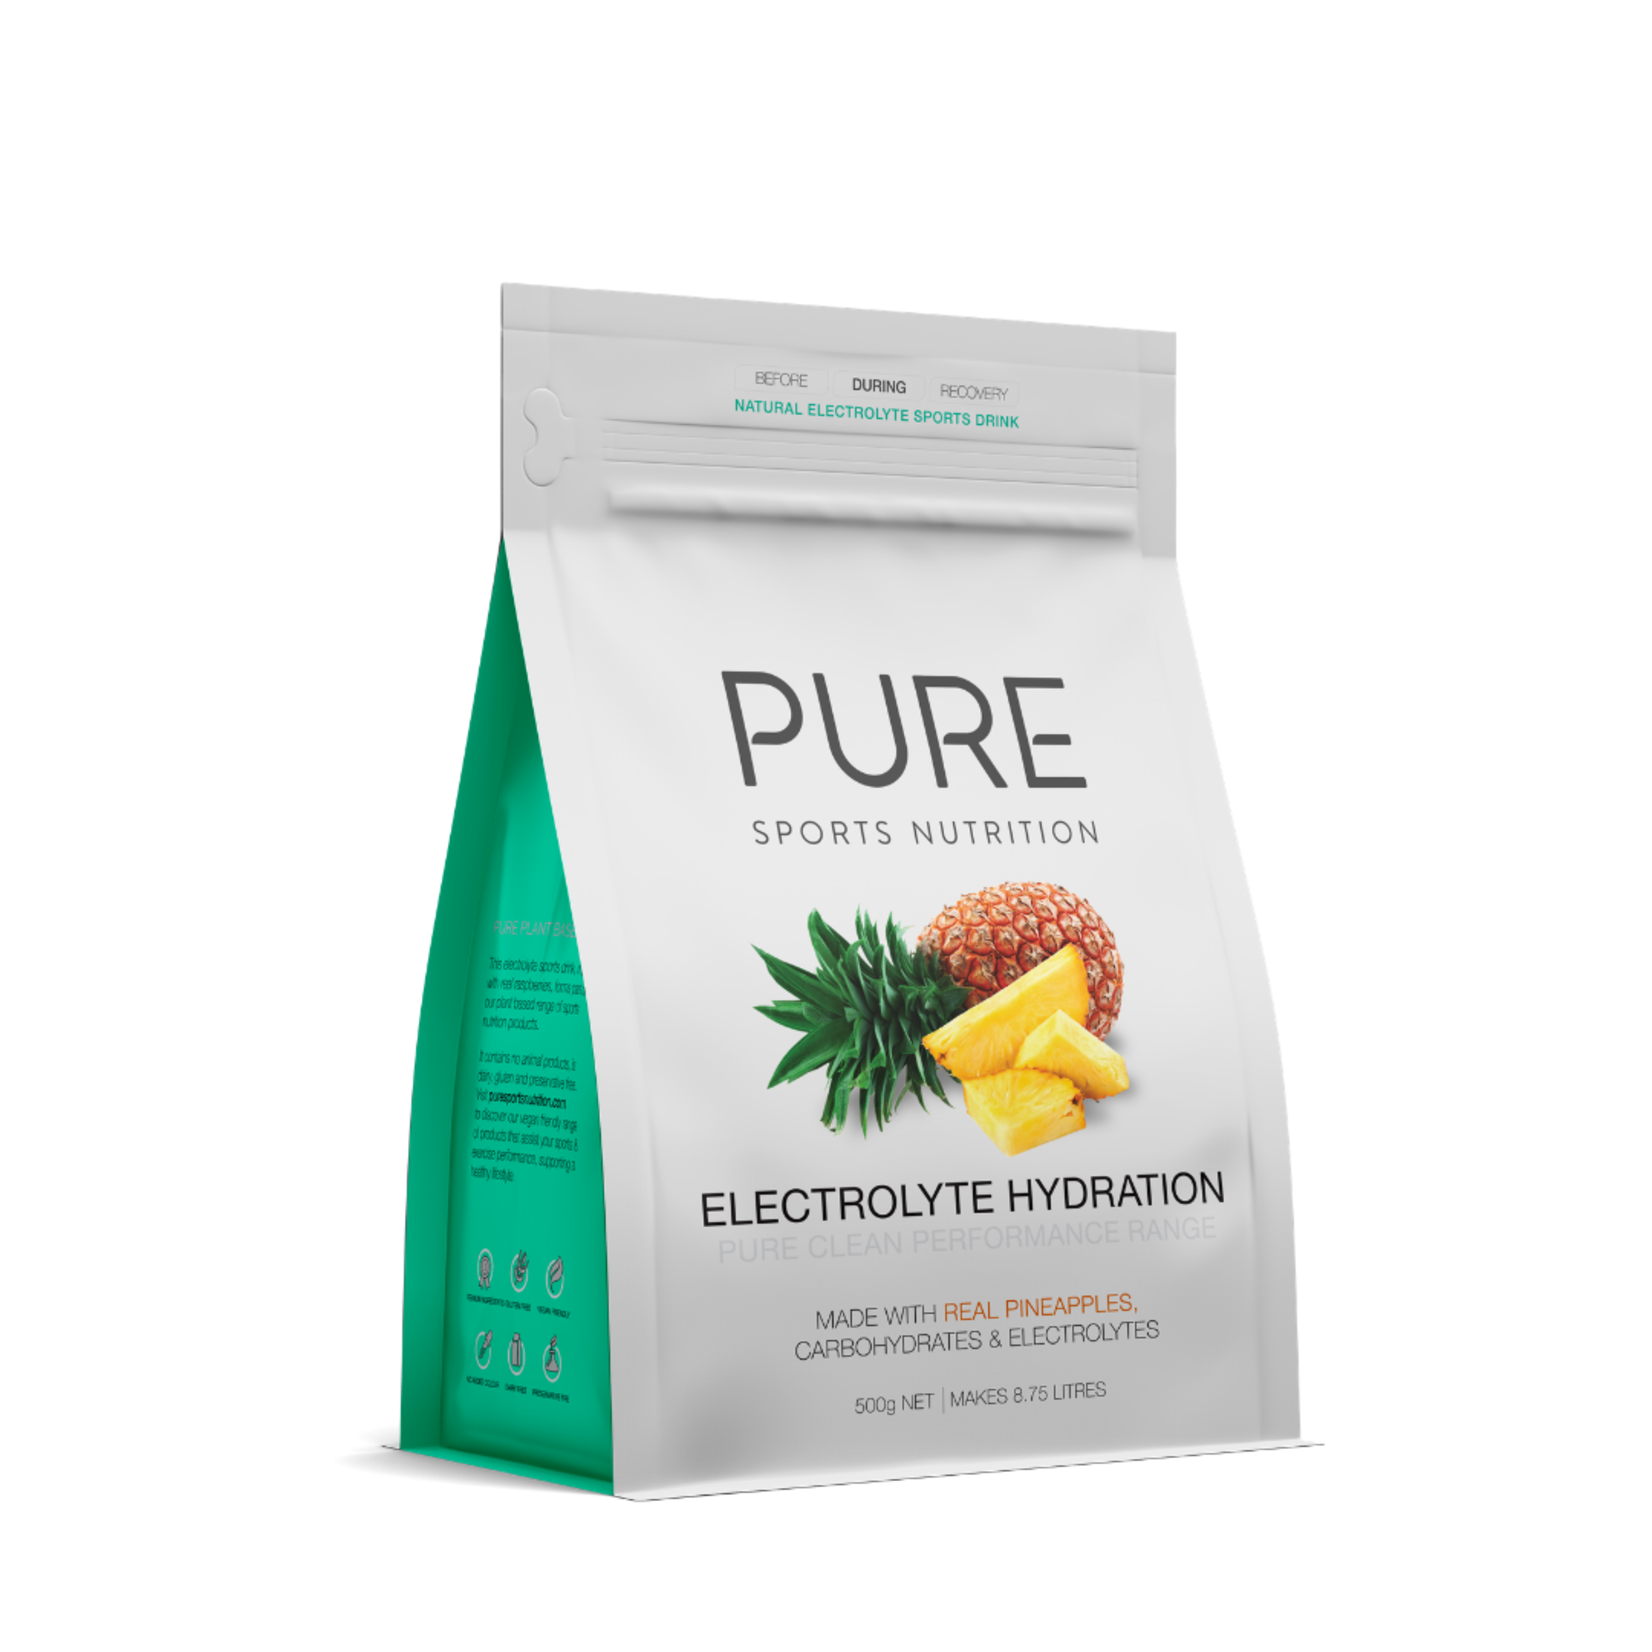 Pure Pure Electrolyte Hydration 500g Pouch